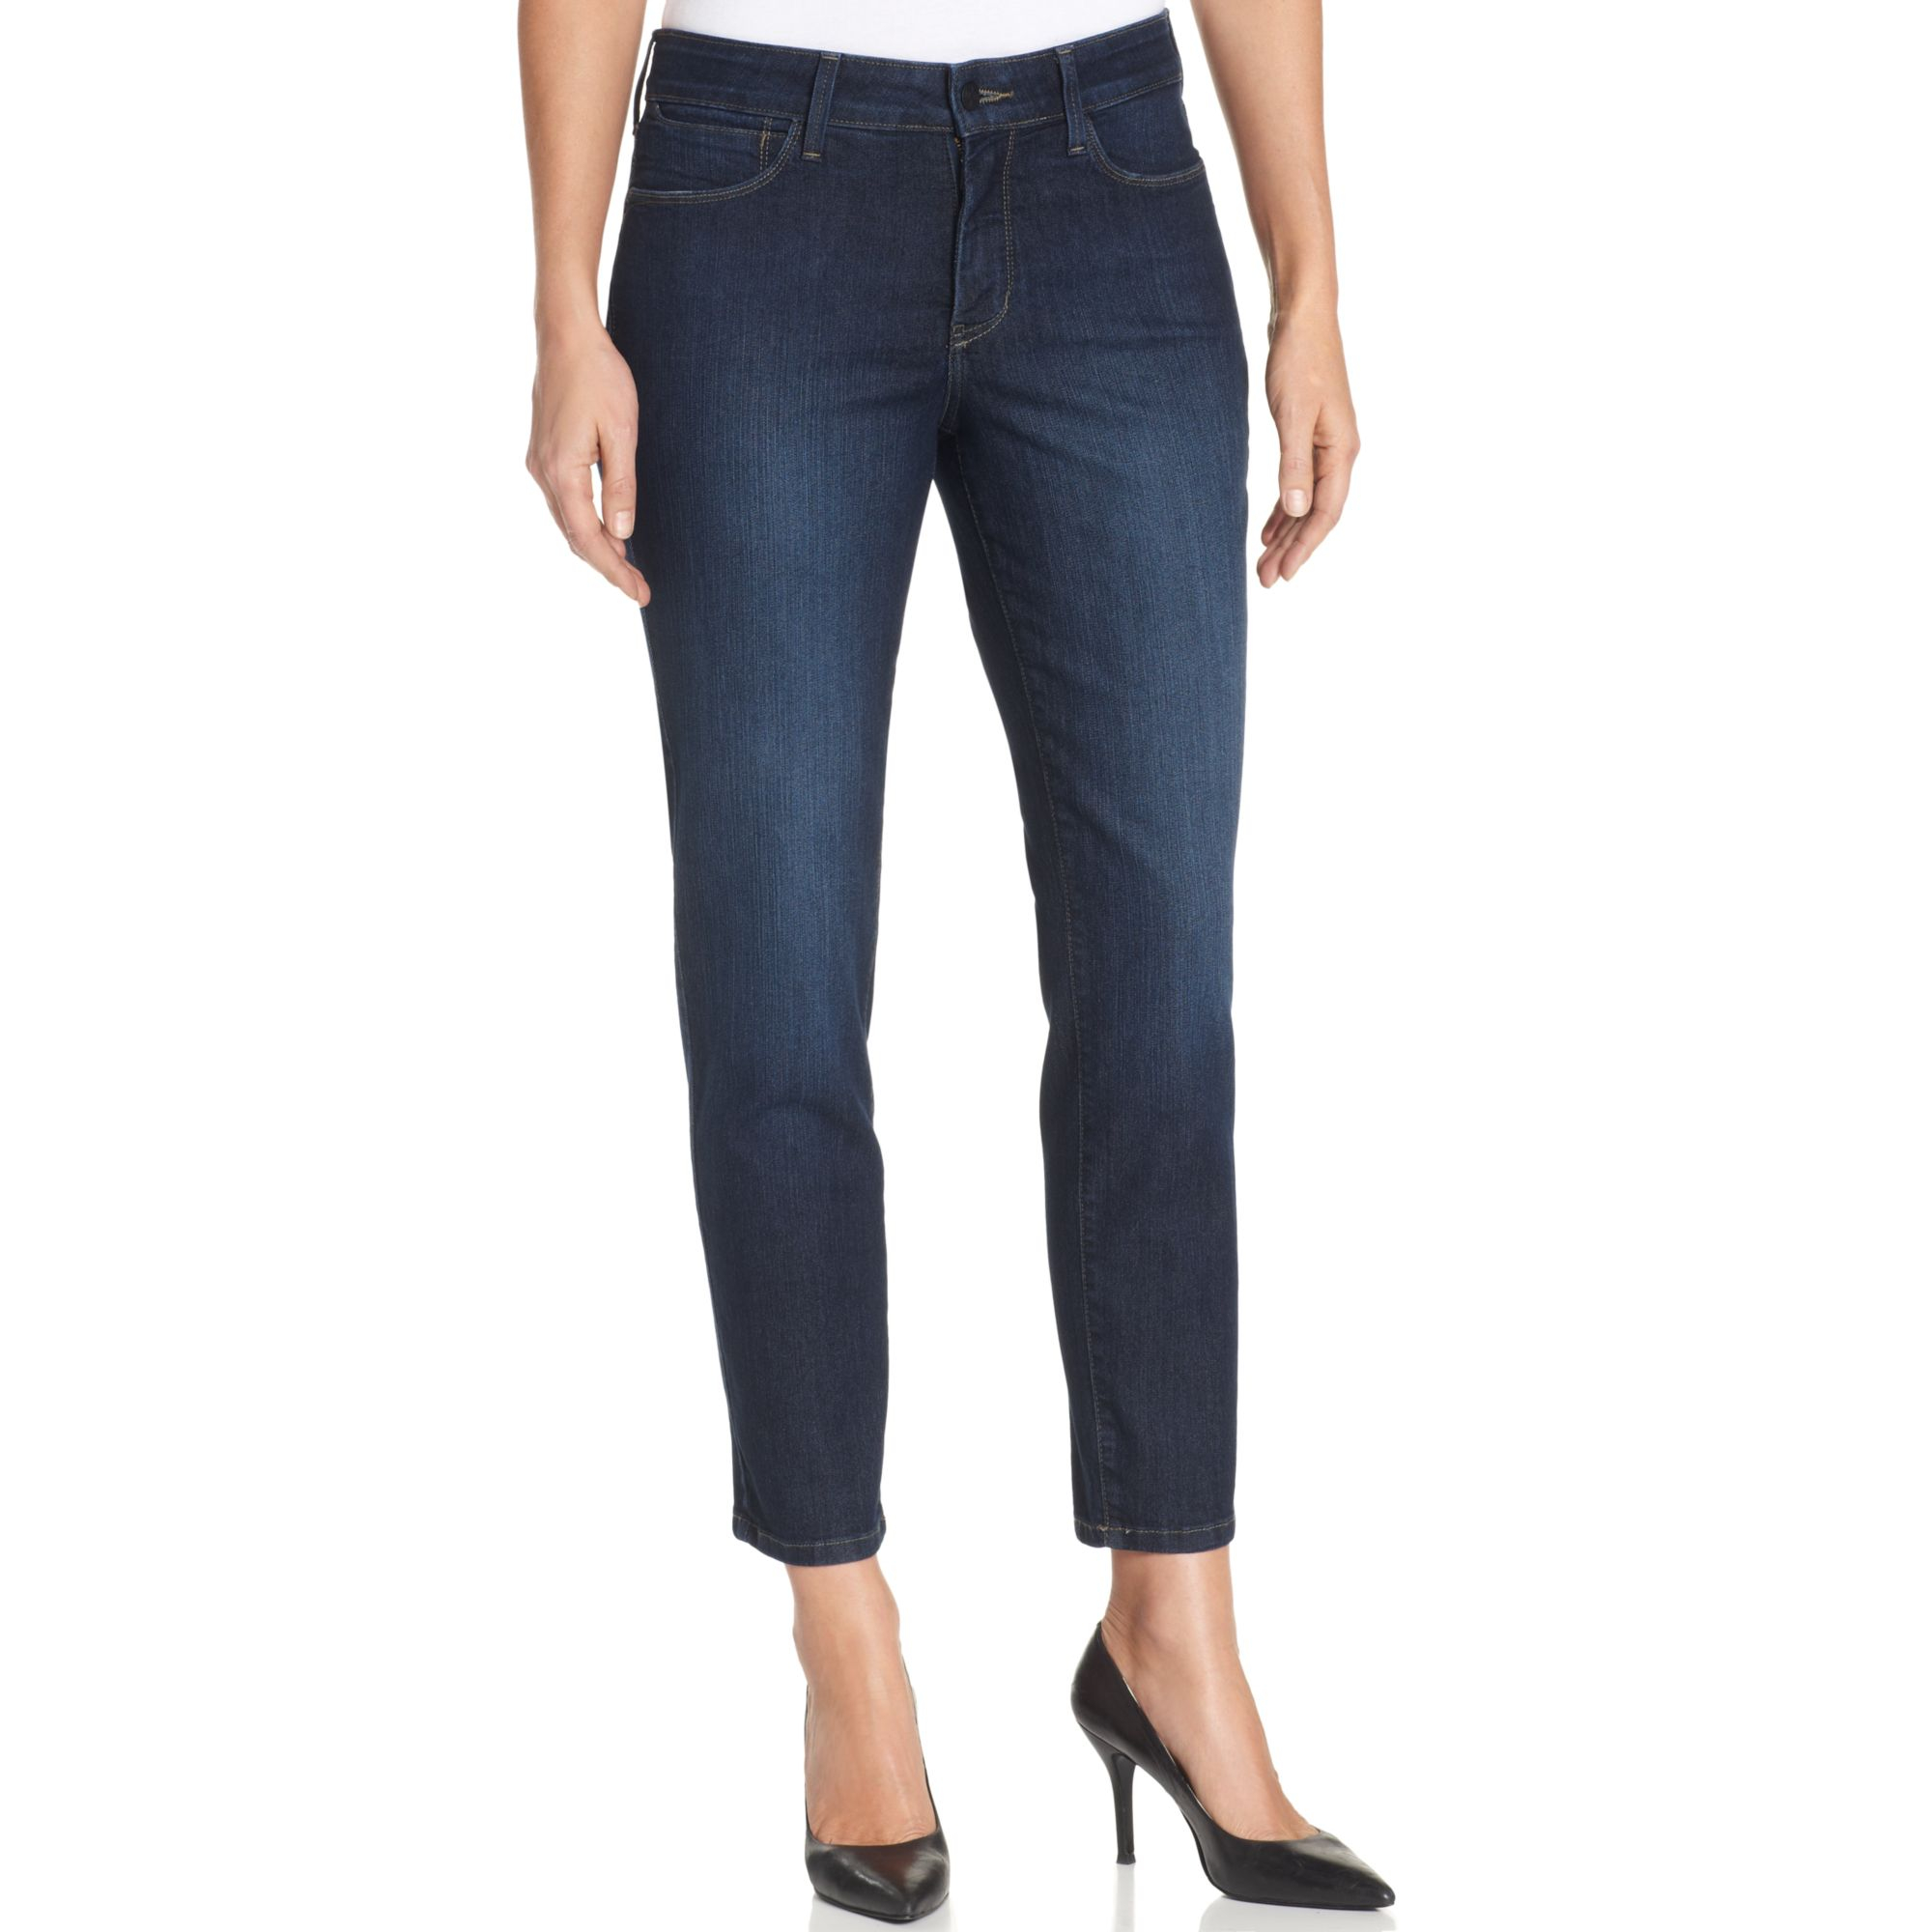 Women's cropped jeans are jeans that end a little higher, above the ankle. This shorter style of jeans is great for showing off your favorite pair of sneakers or sandals! Cropped jeans can be slim or wide legged, depending on the style.